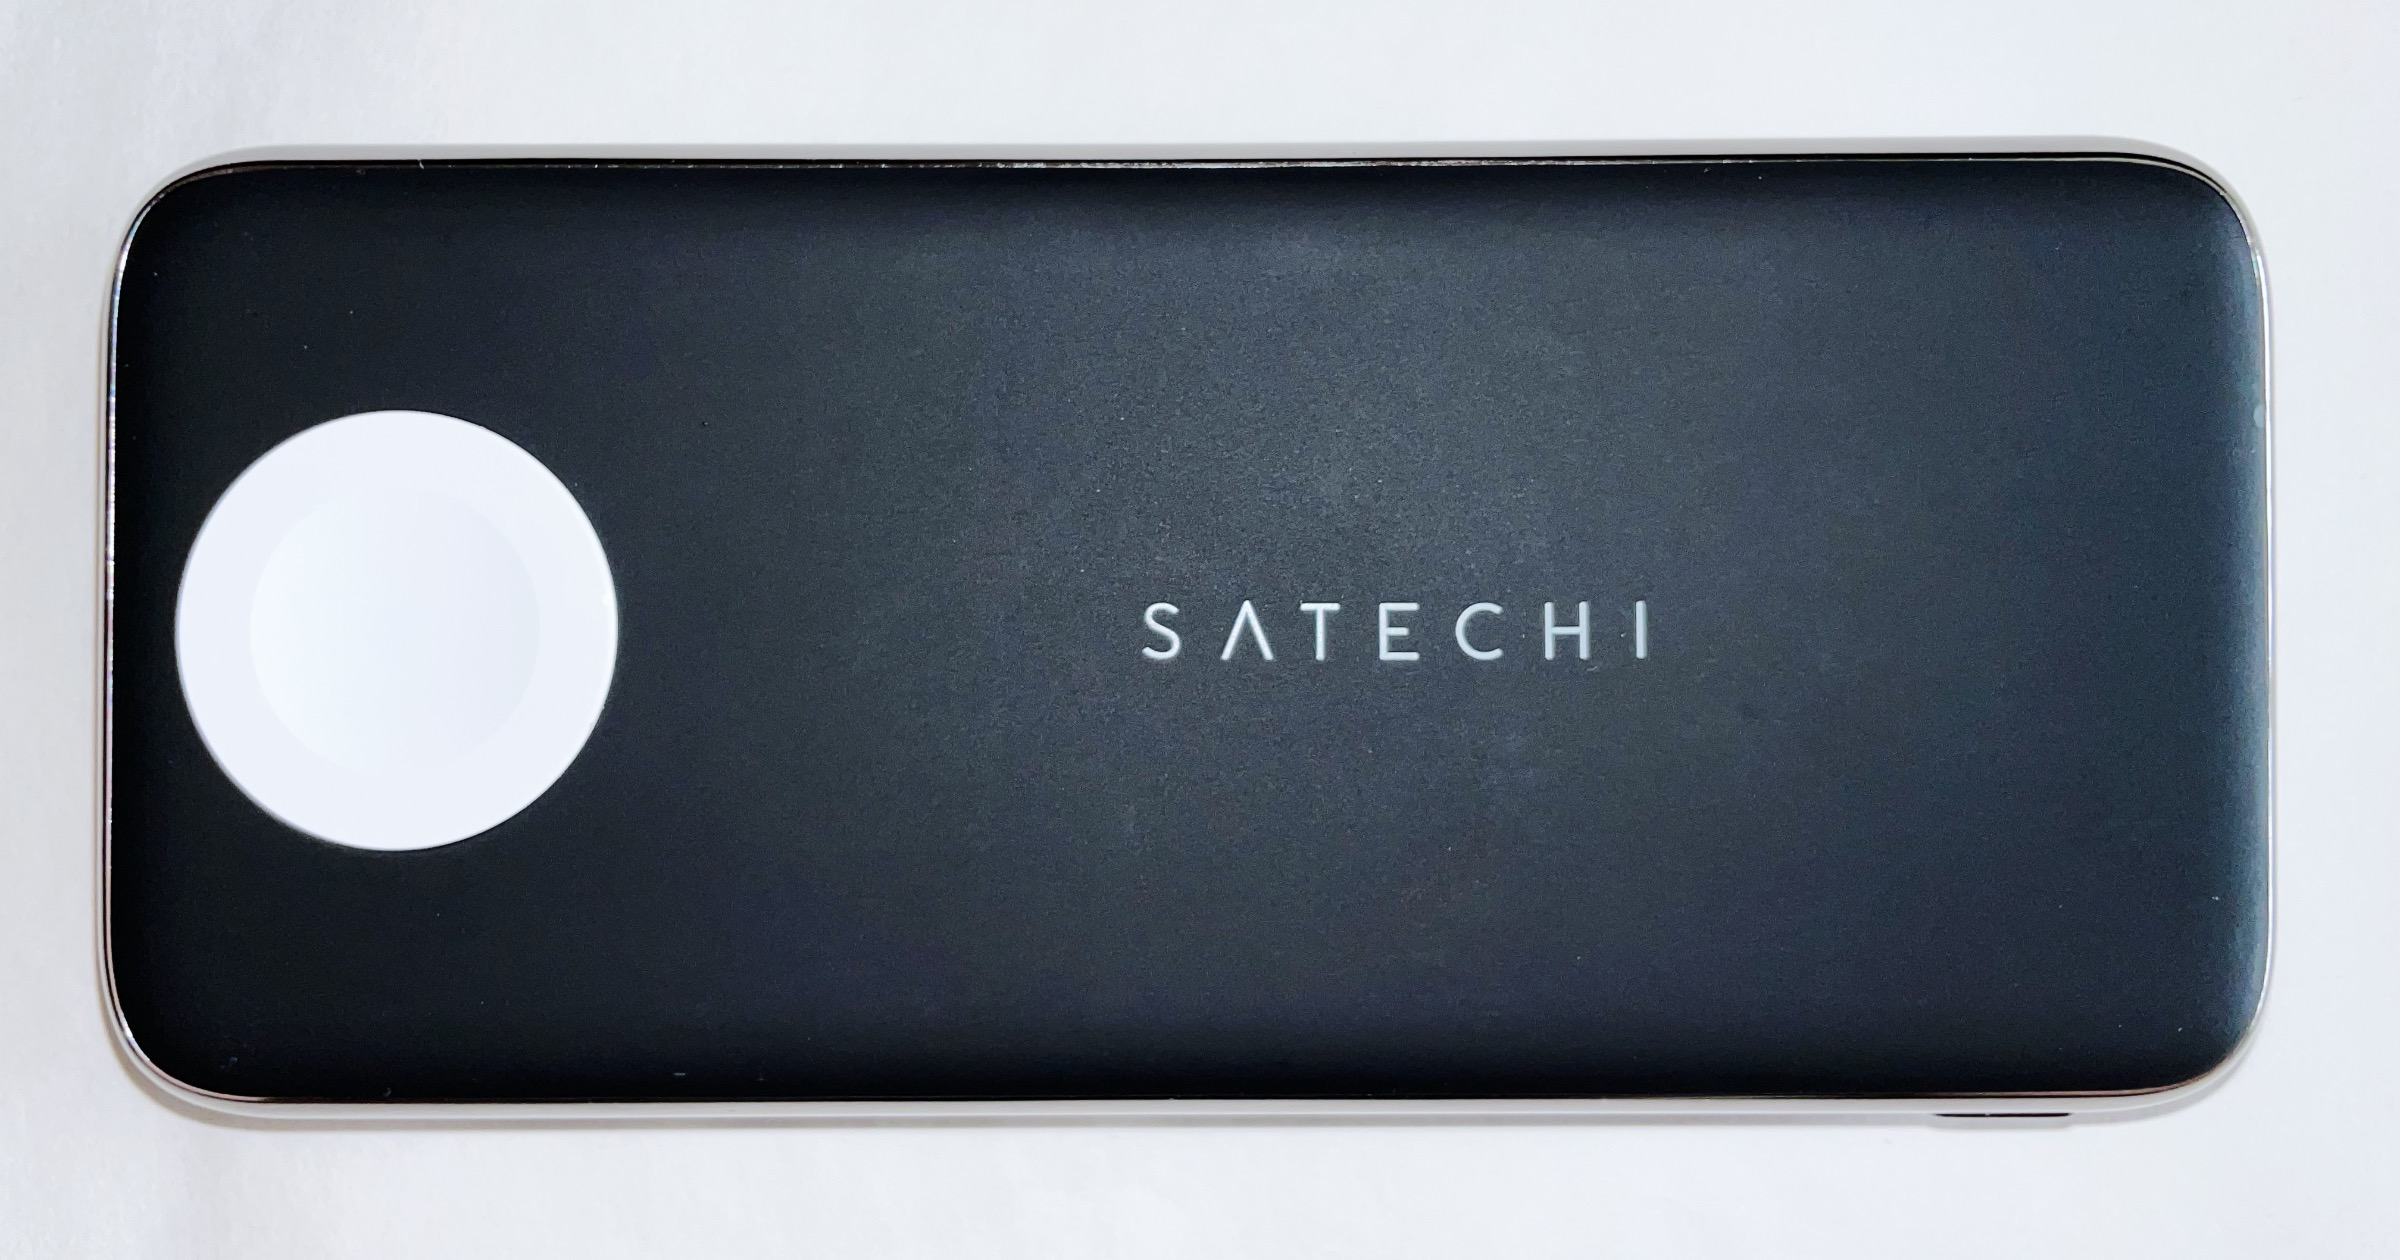 Satechi USB-C charger